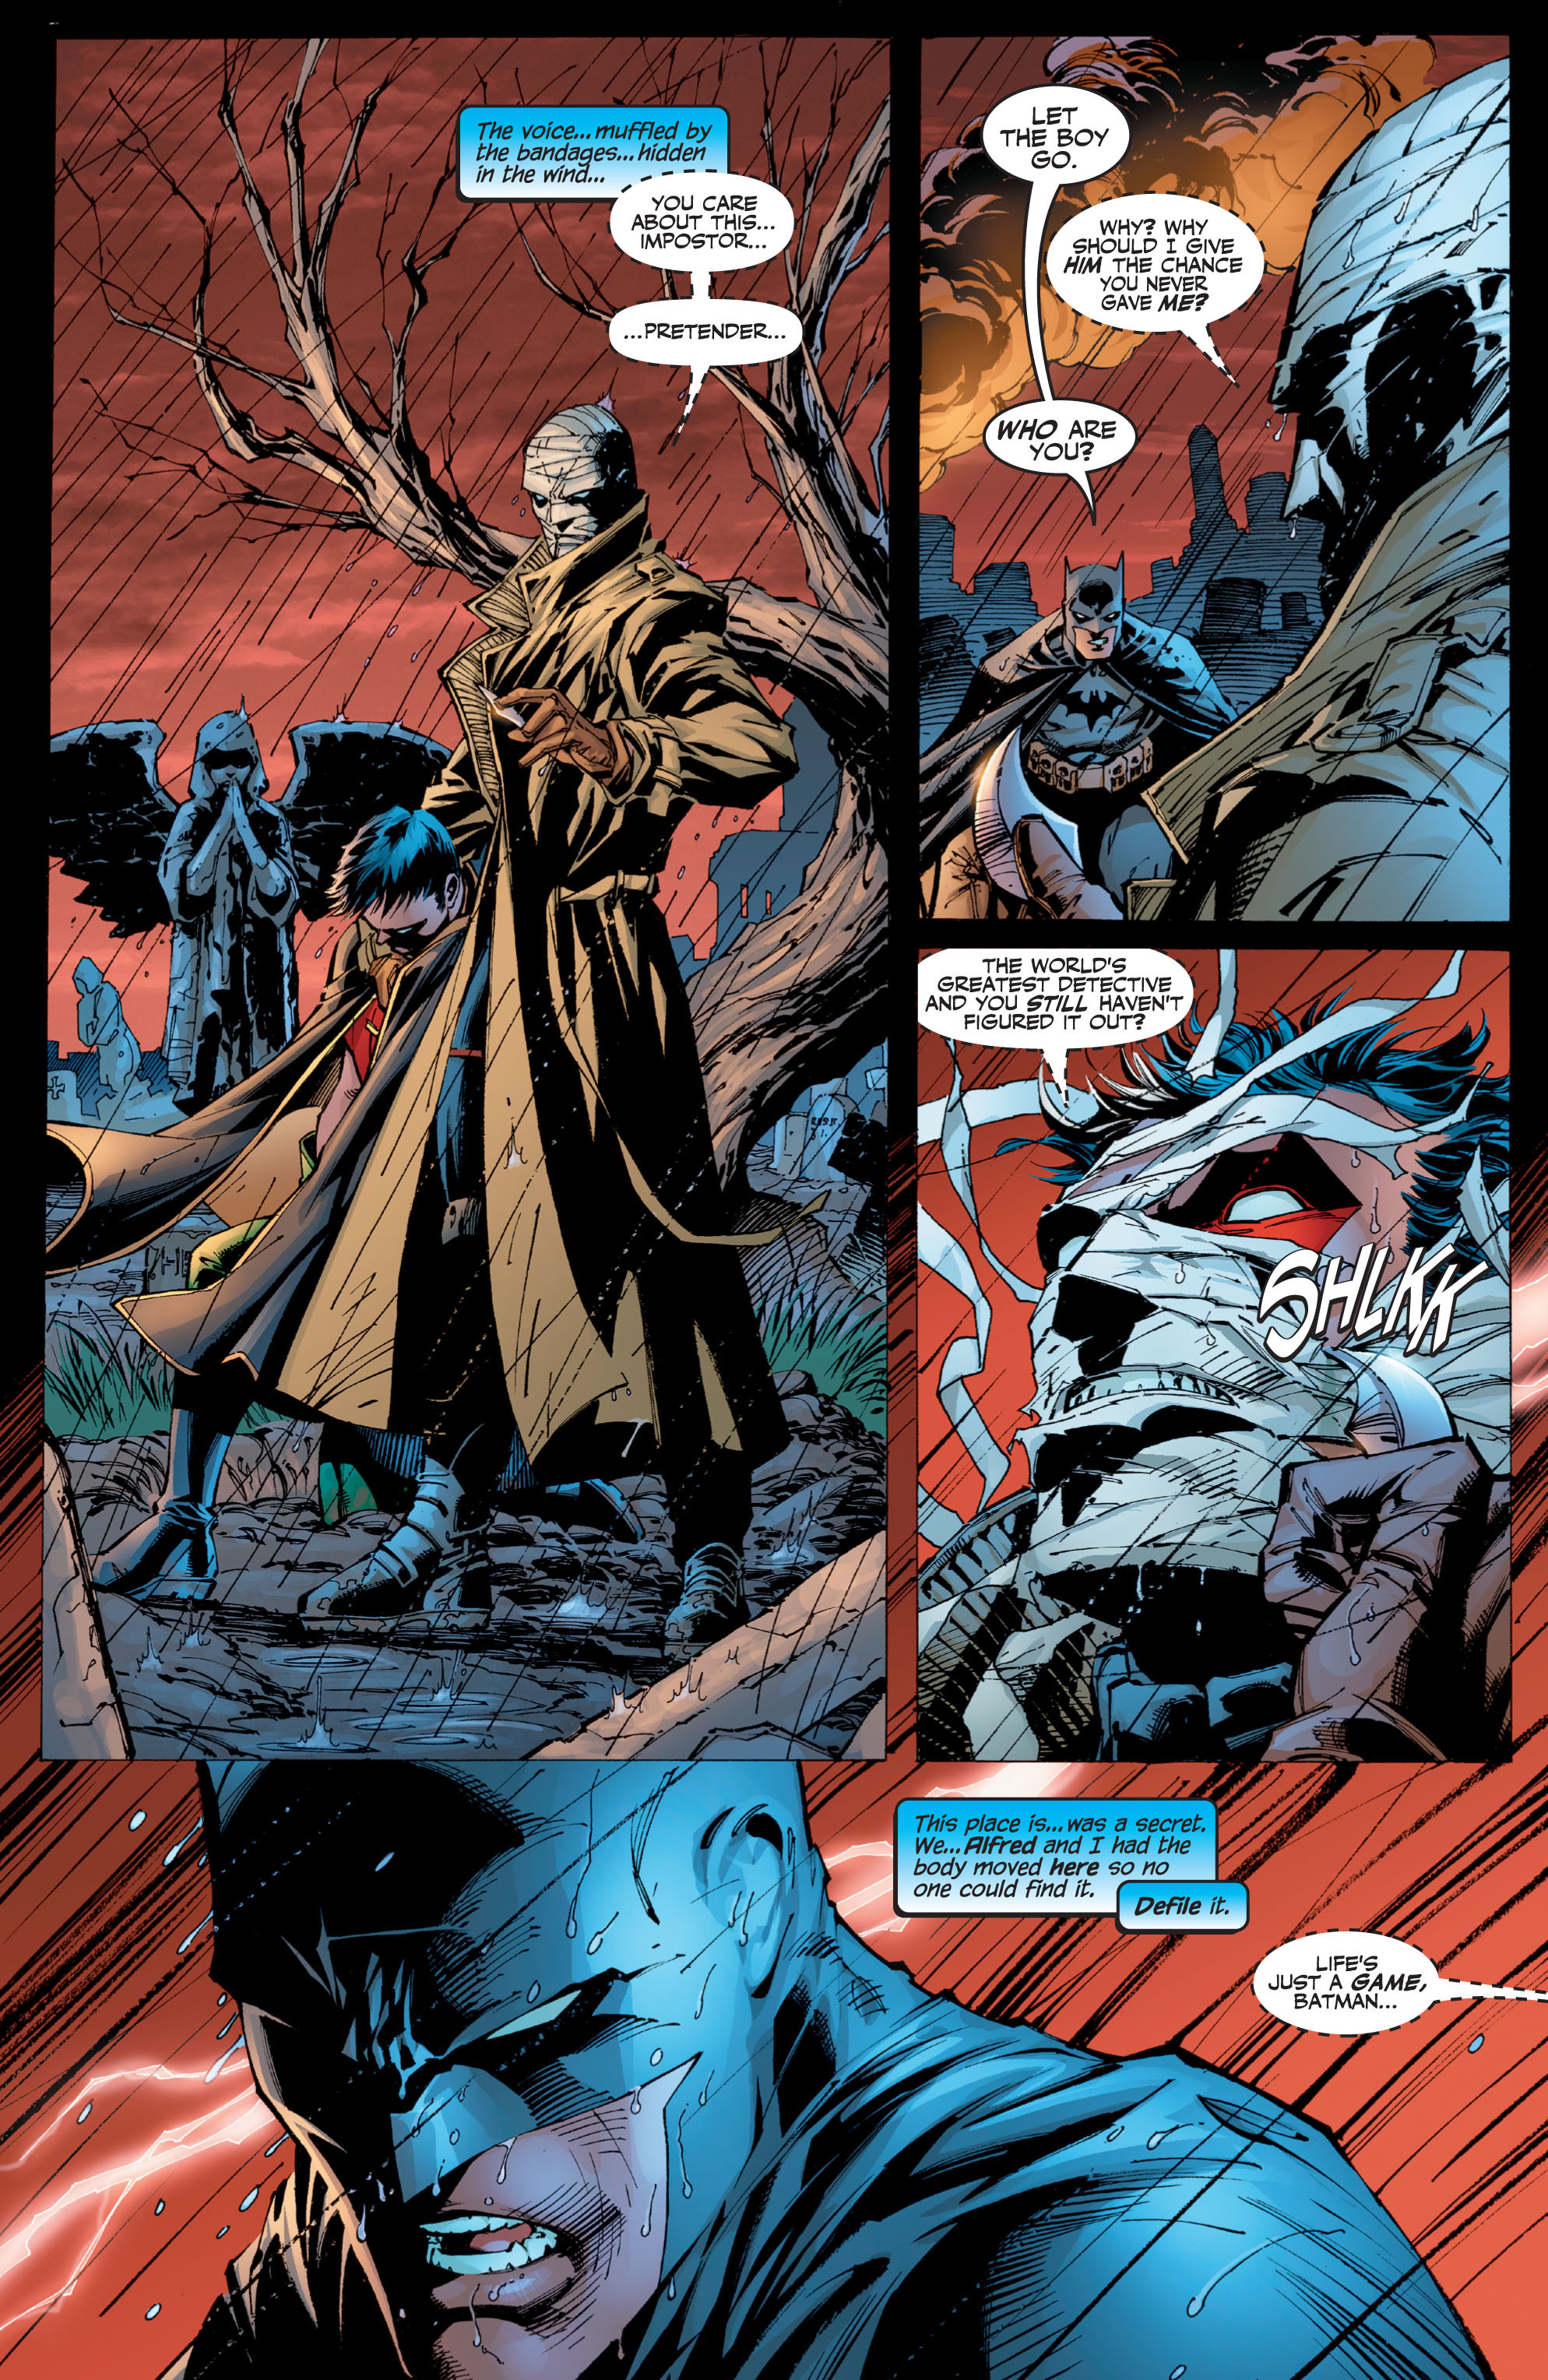 Read online Batman: Under The Red Hood comic -  Issue # Full - 361